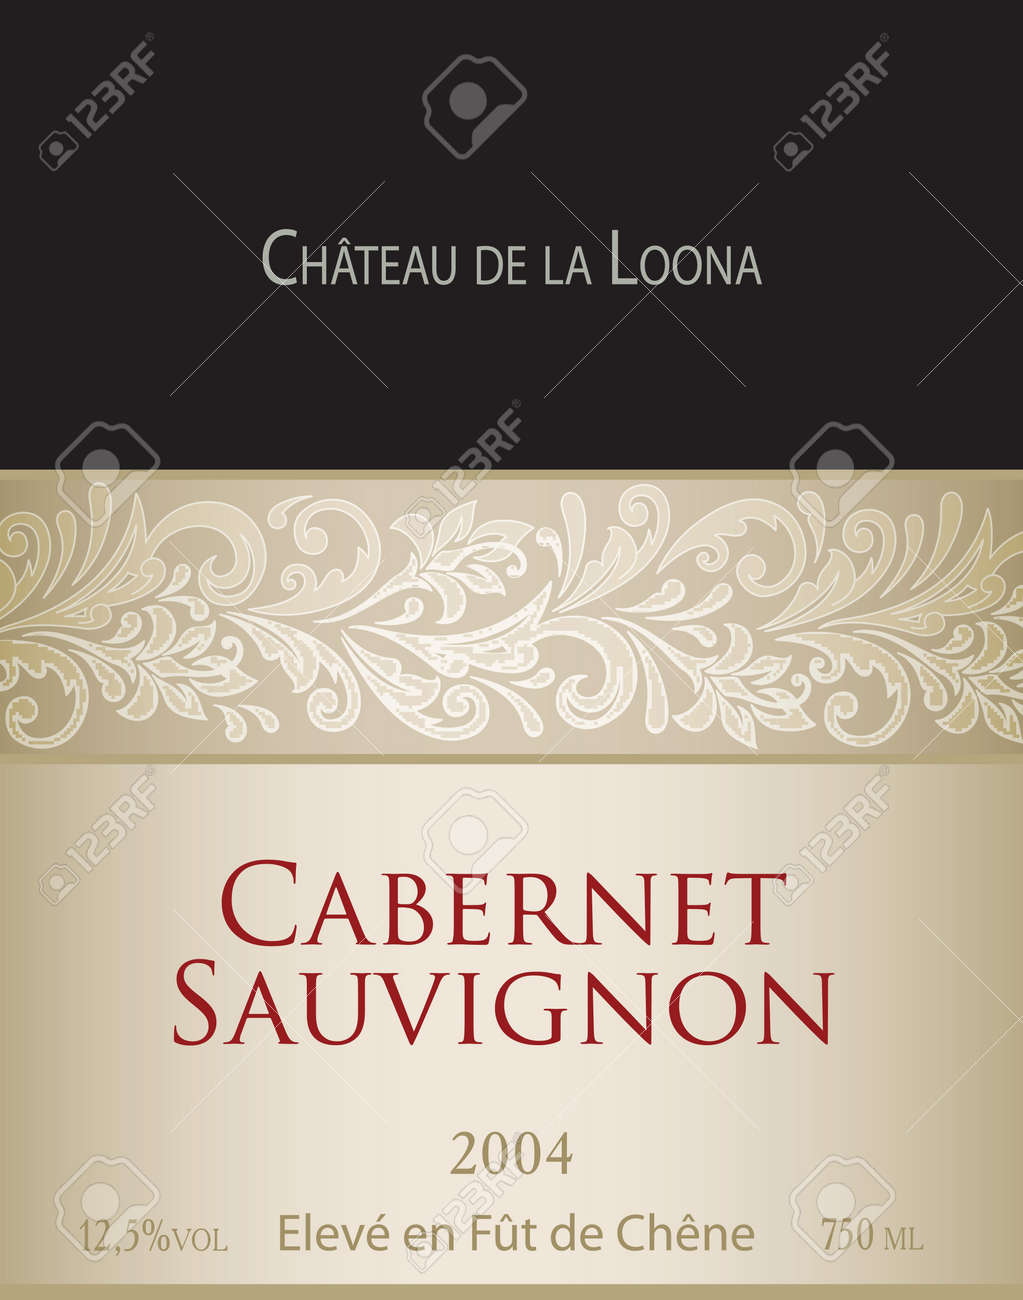 Vector Template Of White Wine Label Cabernet Sauvignon. On The Label Top  There Is A  Free Wine Label Template